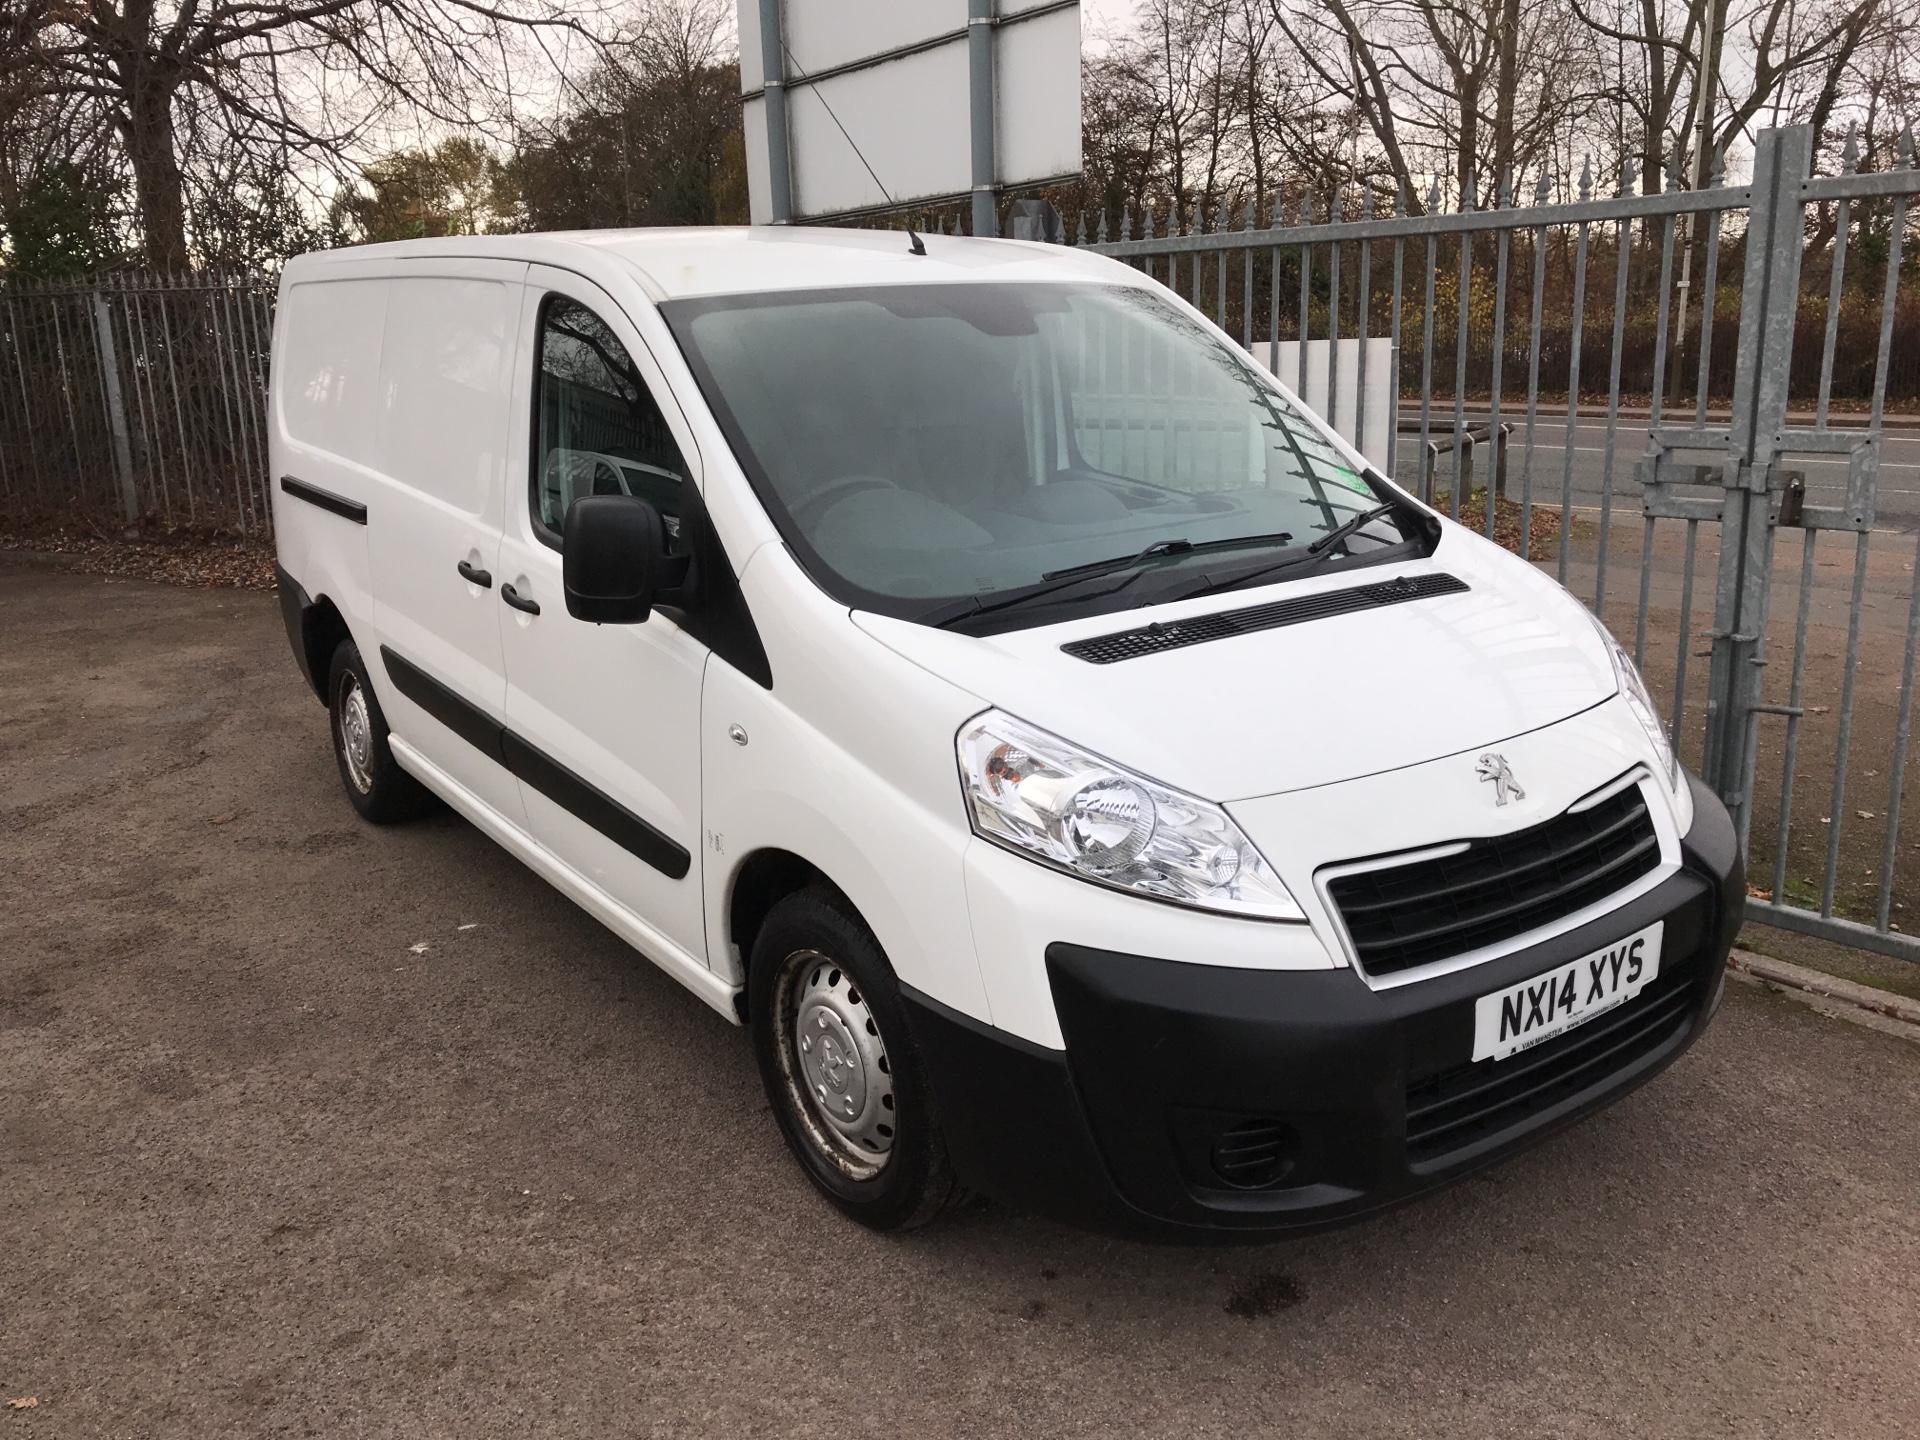 2014 Peugeot Expert  L2 H1 1200 1.6 90 BHP EURO 4/5 *VALUE RANGE VEHICLE - CONDITION REFLECTED IN PRICE*  (NX14XYS)